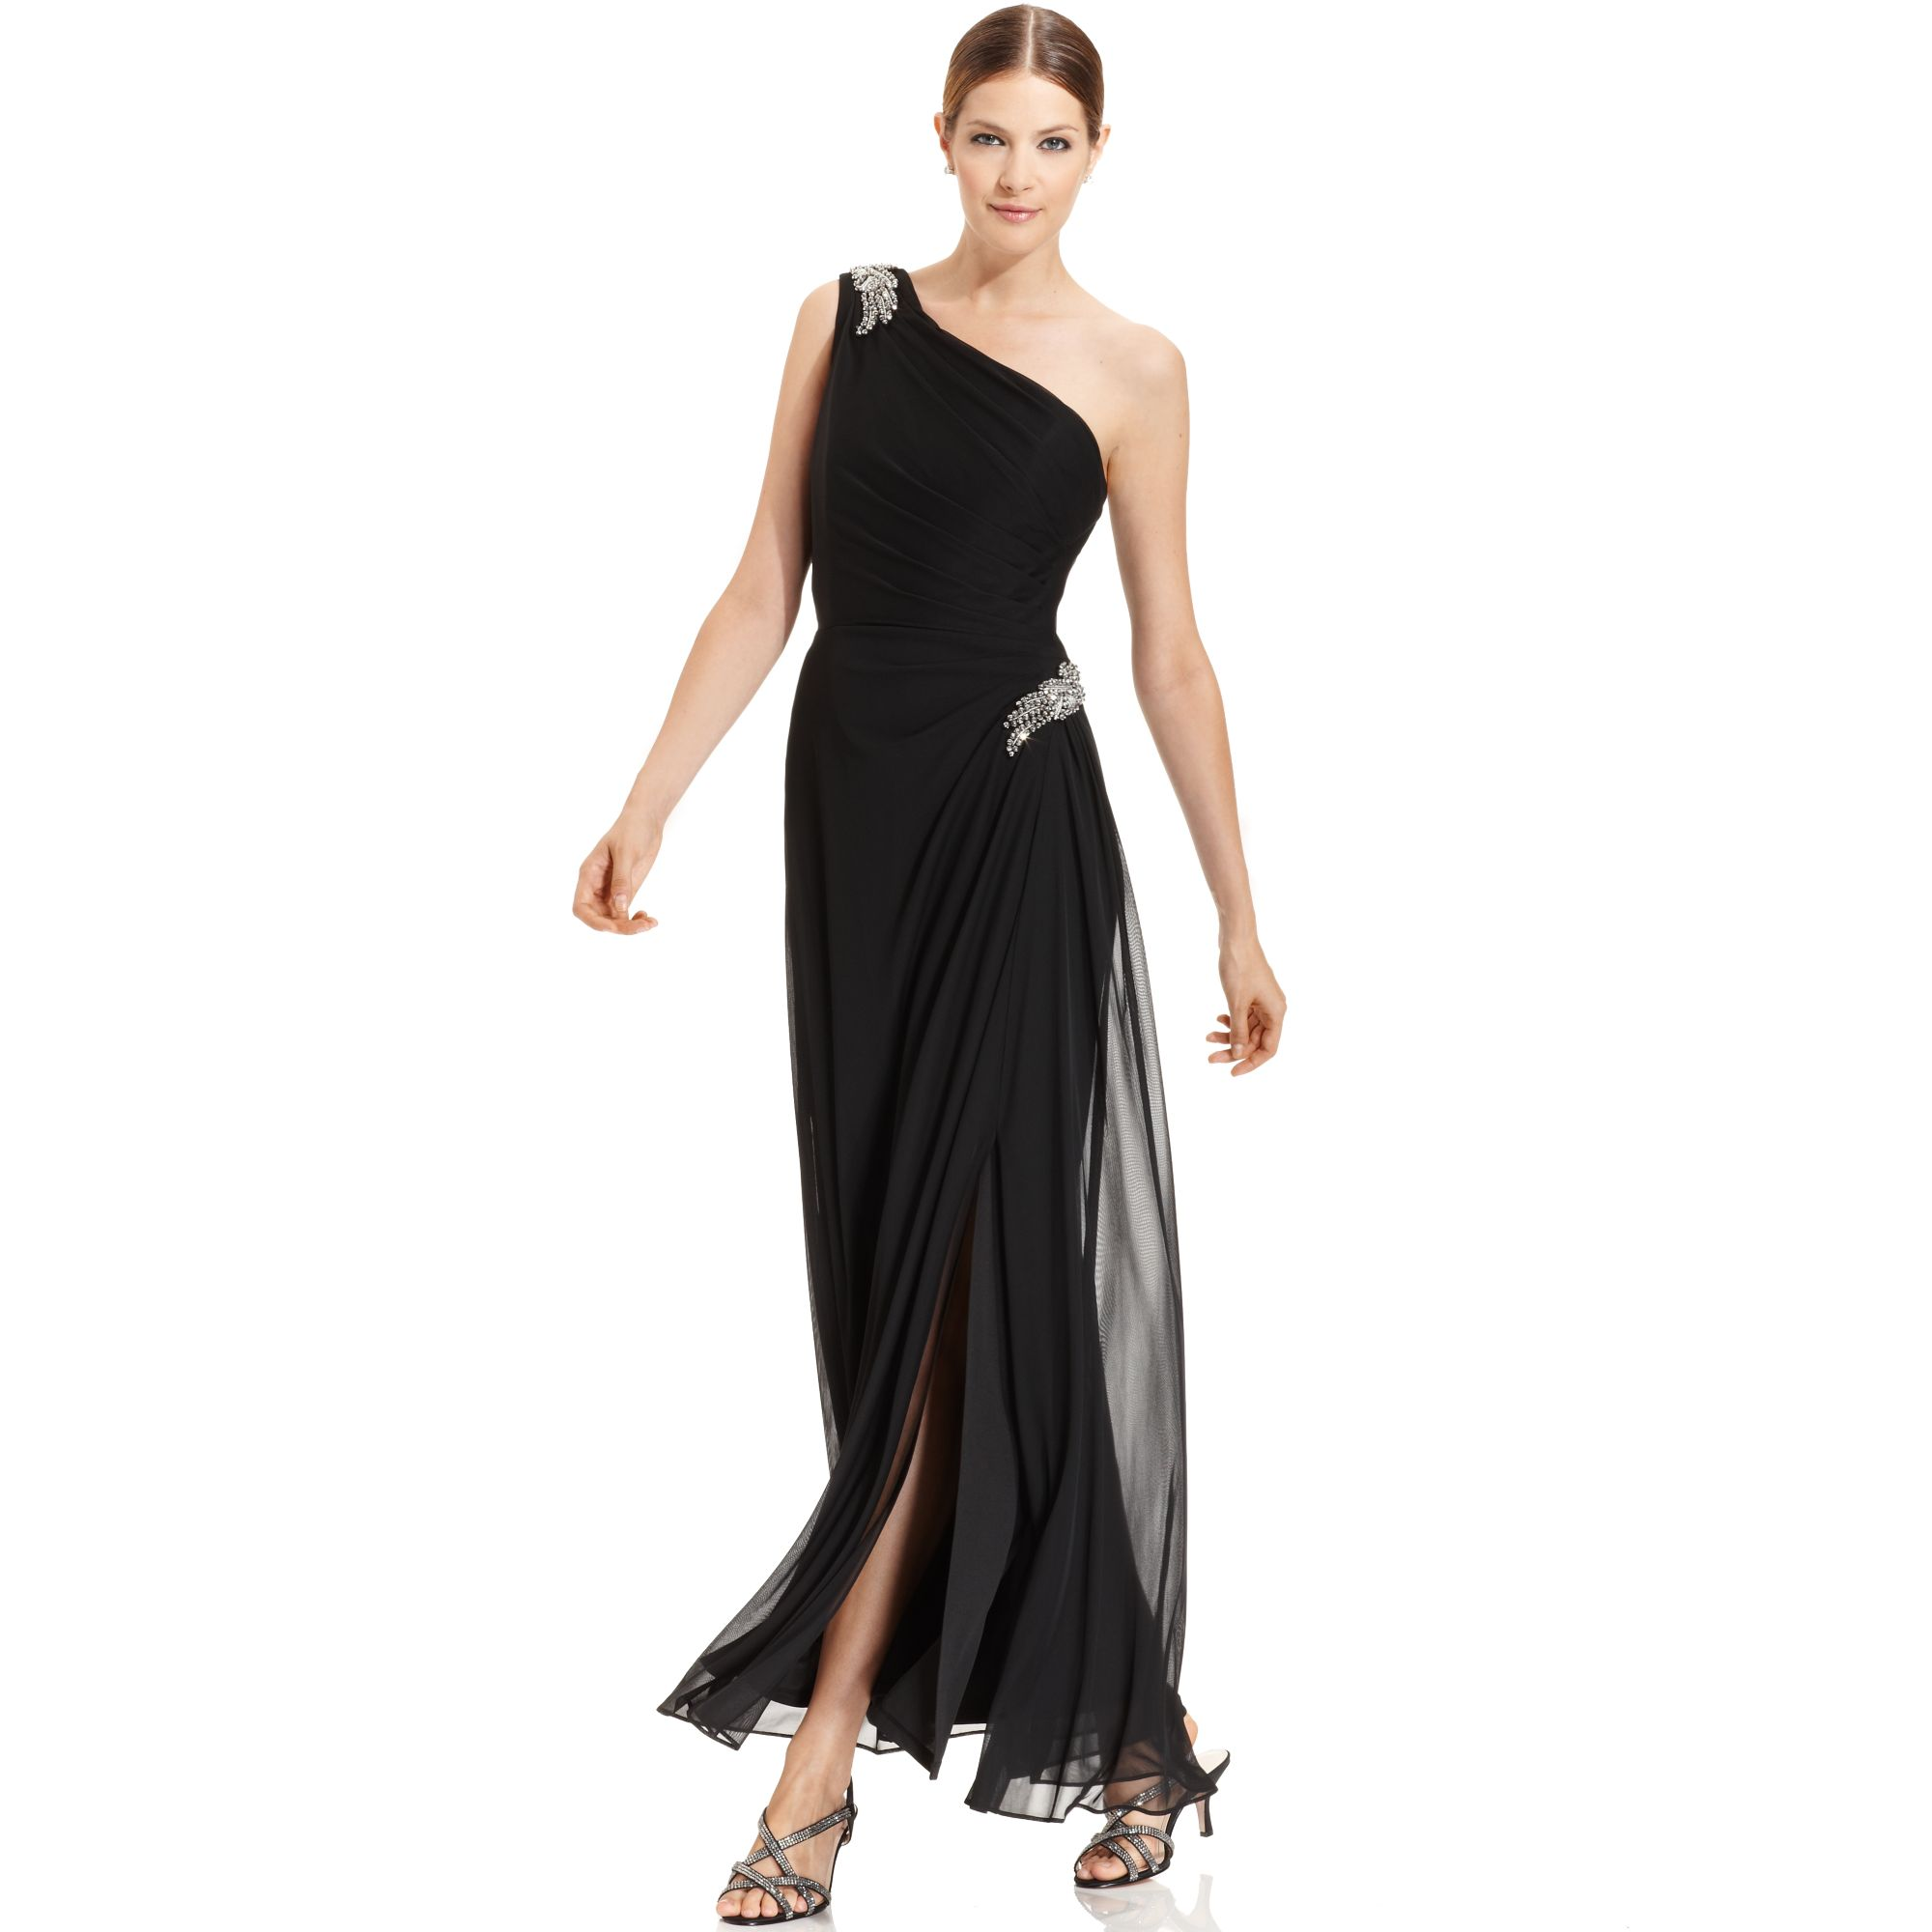 Alex evenings Sleeveless Oneshoulder Draped Gown in Black | Lyst